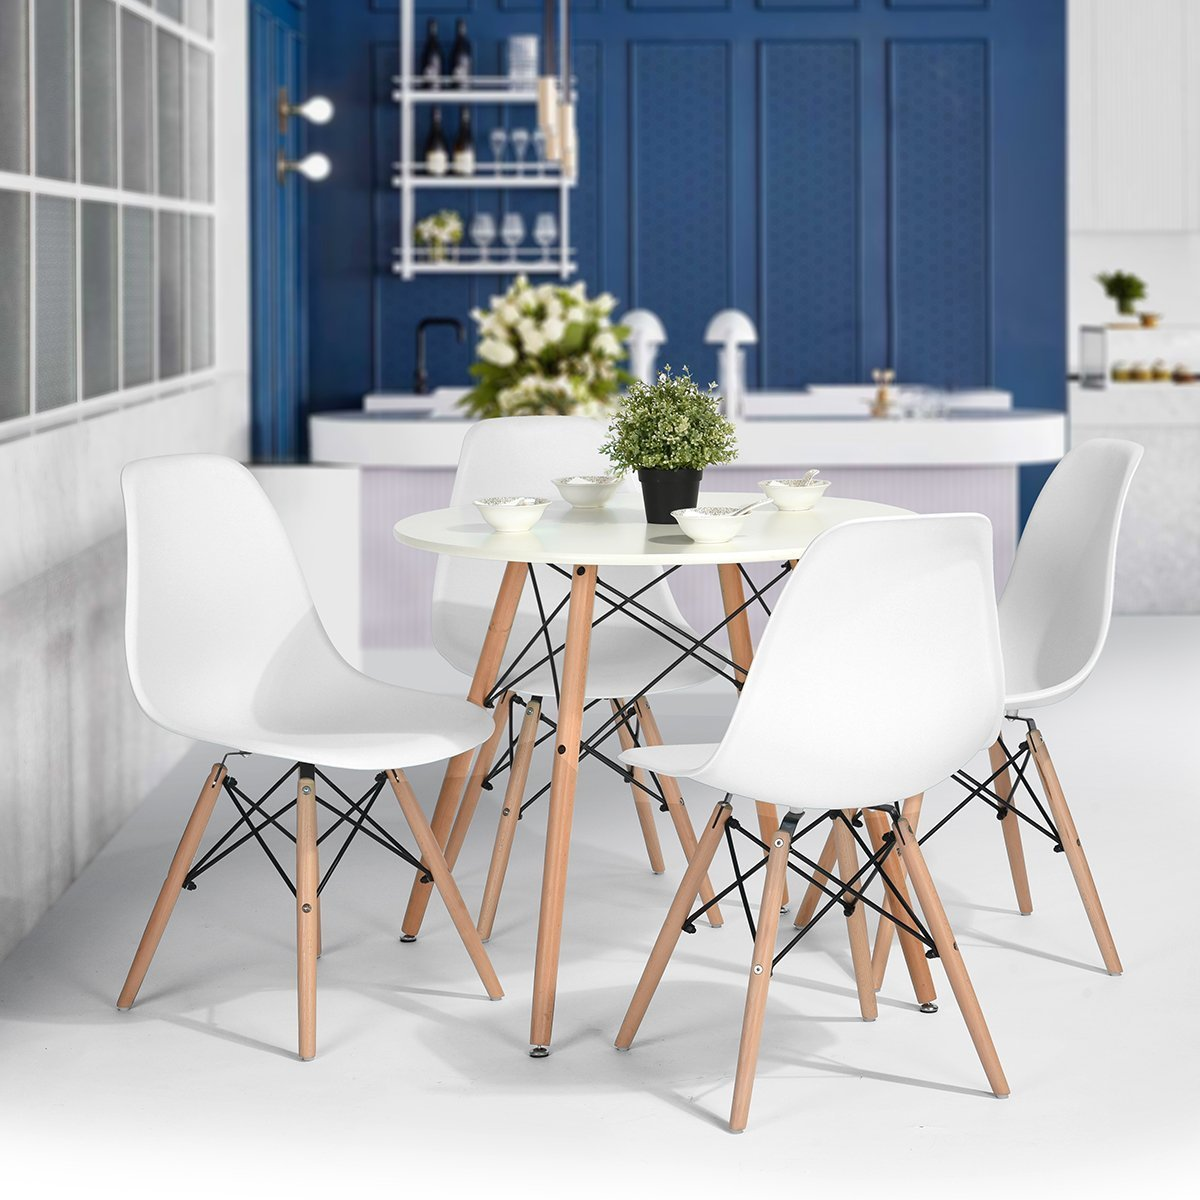 HOMY CASA Mid Century Modern Style Eames Seat Height Natural Wood Legs Armless Chairs for Kitchen, Dining, Bedroom, Living Room White Color, Set of 4